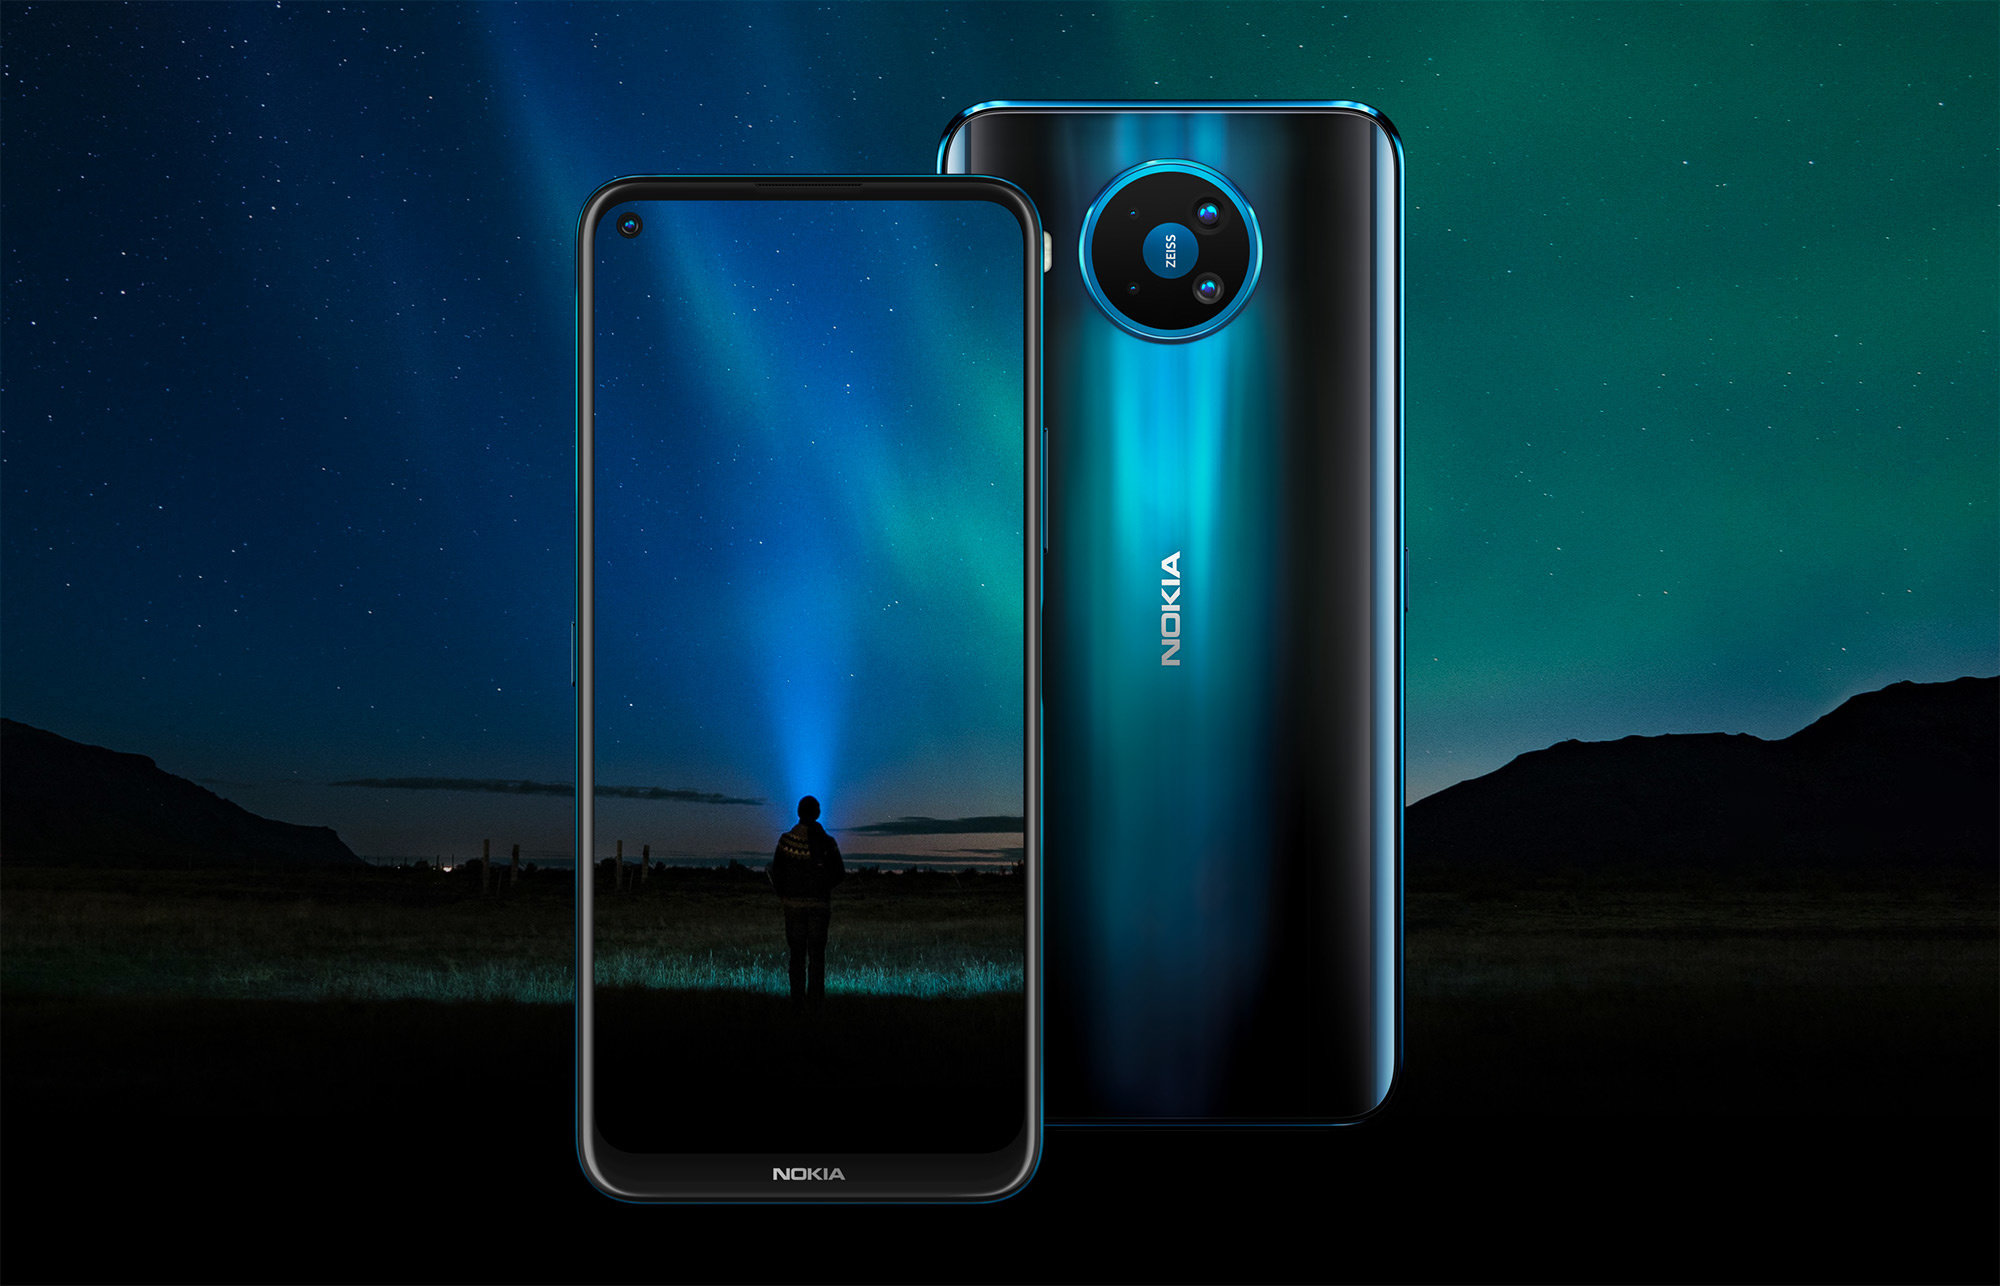 Nokia's 8.3 has 5G connectivity which is rare on a phone at this price